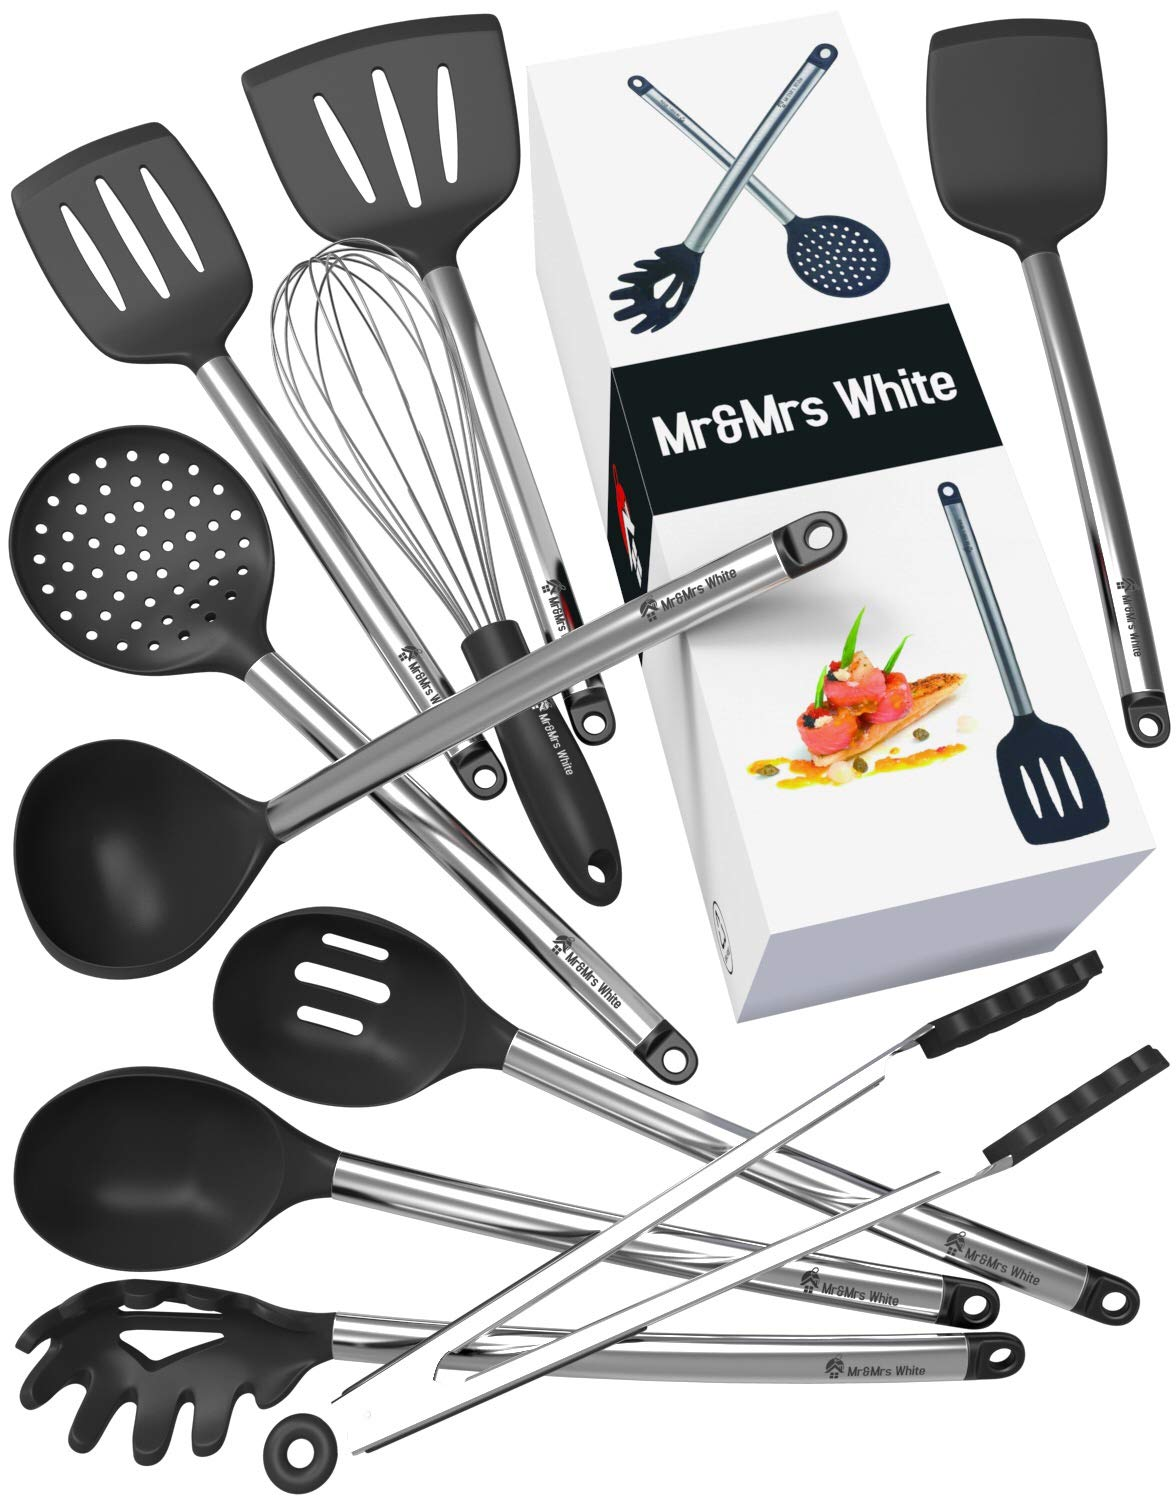 Kitchen Utensil Set 10 Cooking Utensils Nonstick Silicone And Stainless Steel Spatula Set Best Kitchen Tools For Gift Aaron Finds It